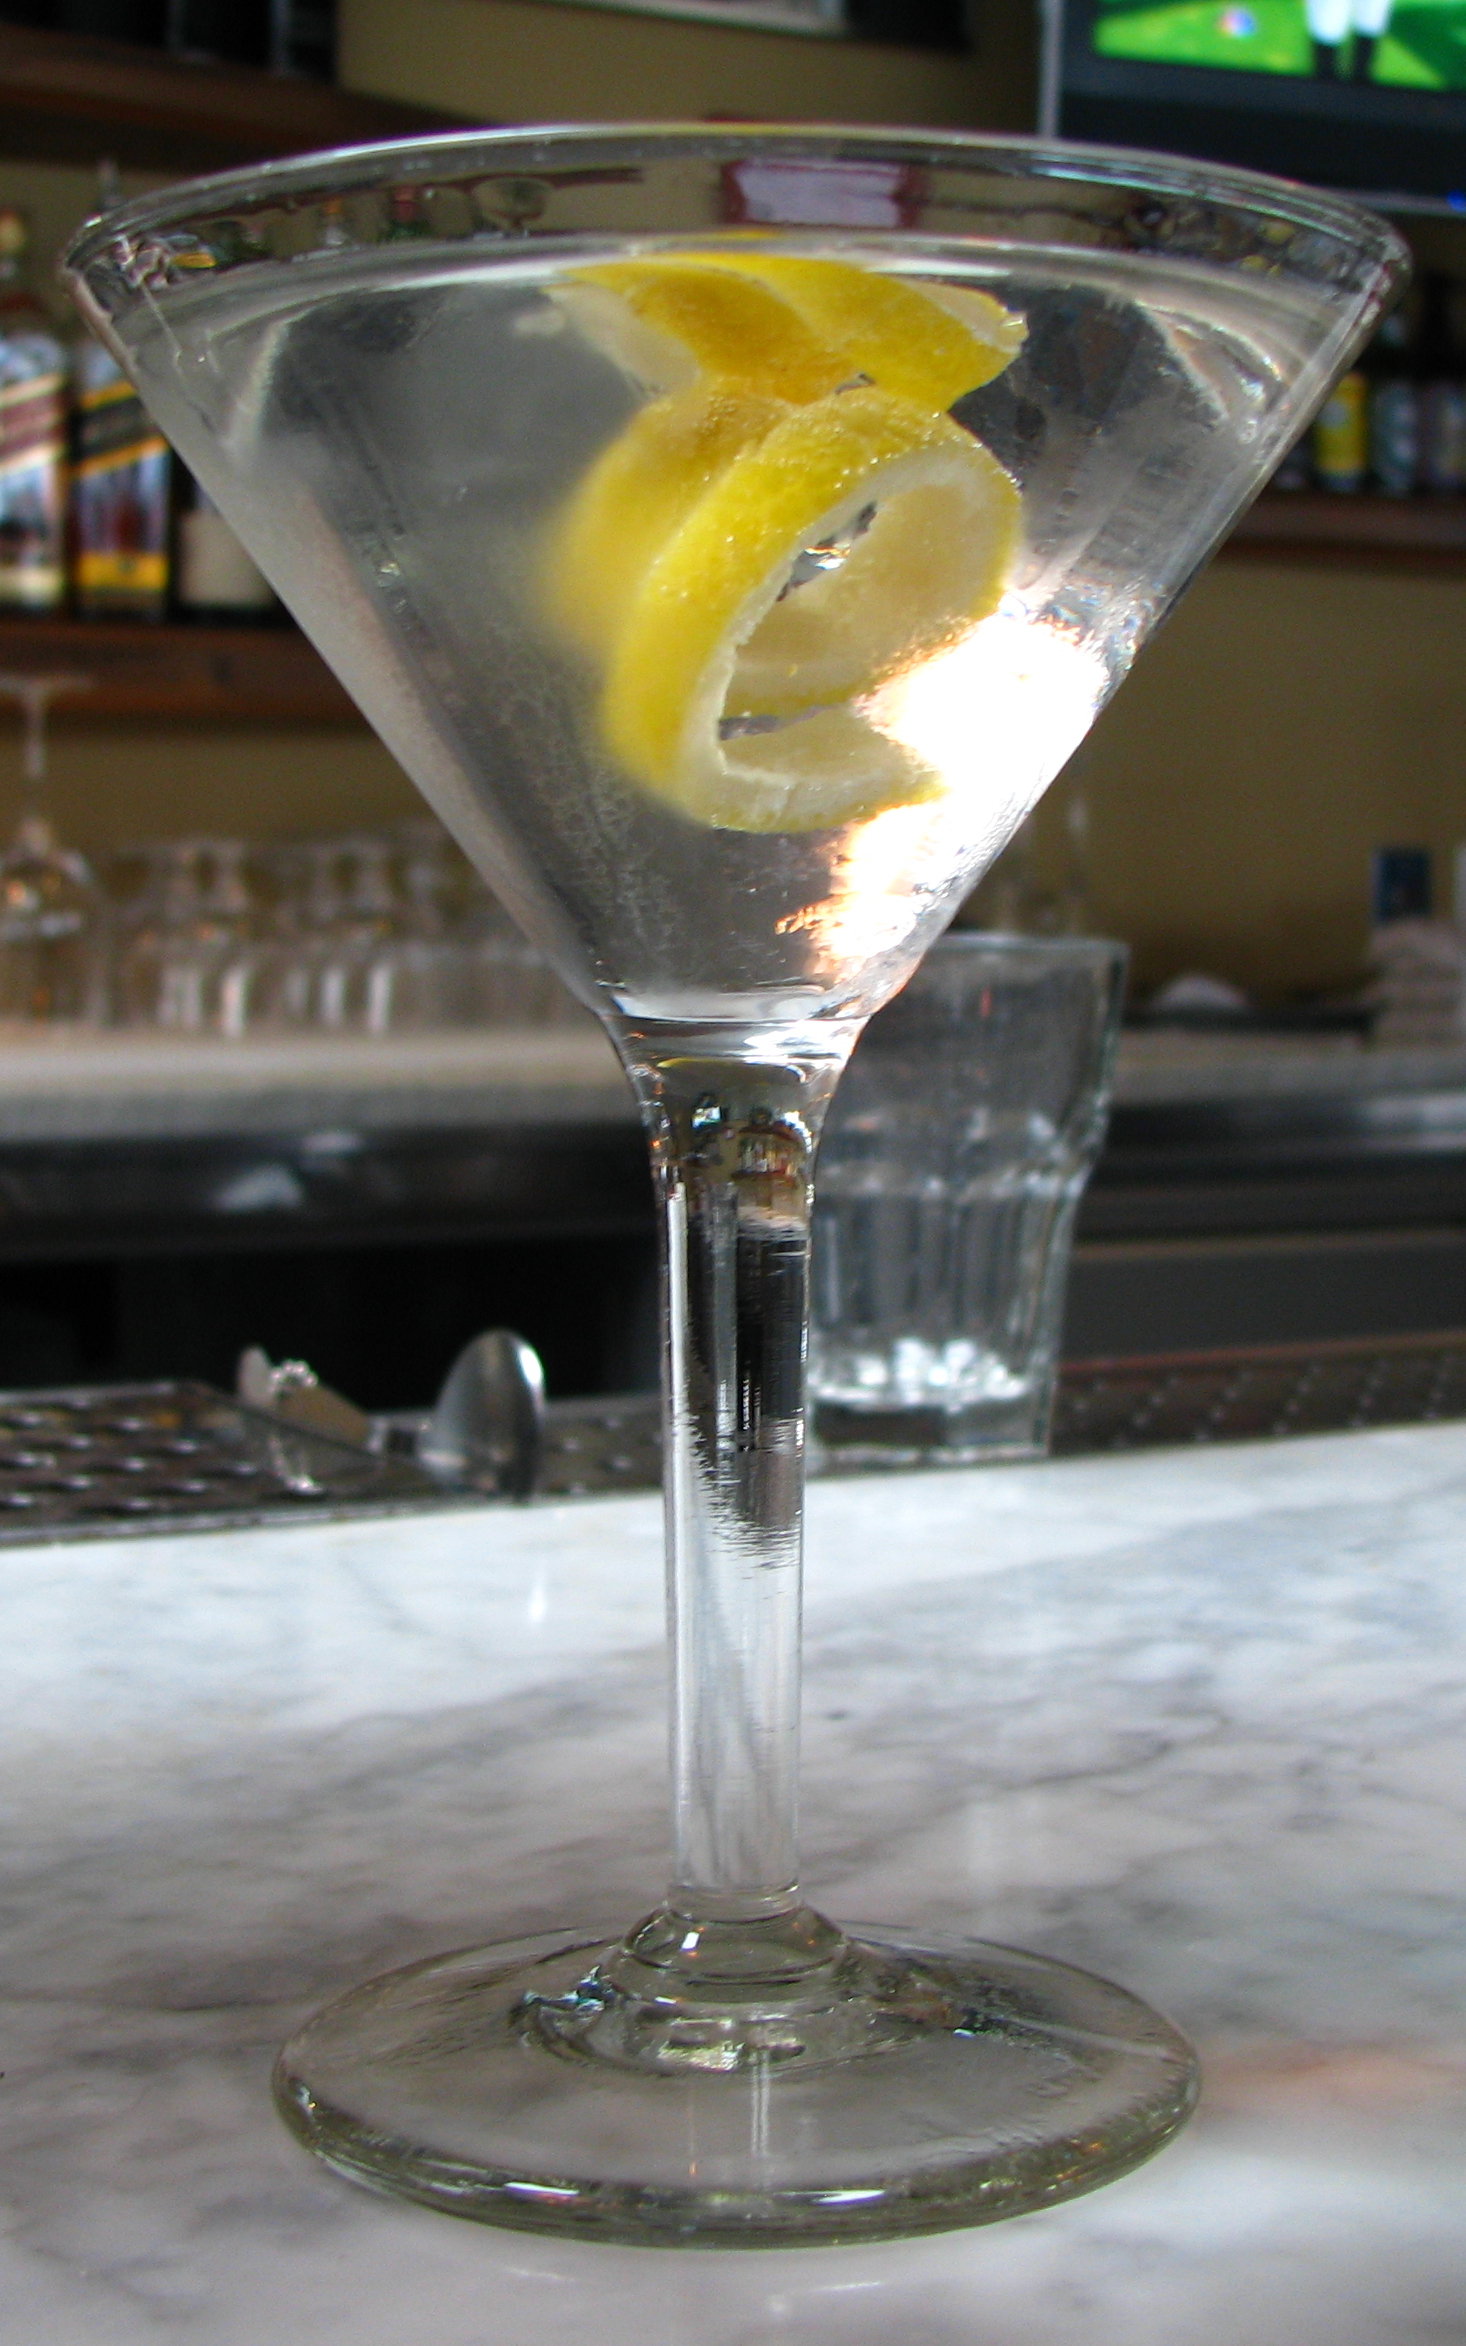 Feb 10, · The blood orange vesper martini is a dramatic cocktail inspired by a classic espionage love story. When it comes to this time of year and the focus on all things pink, red, and love, I think of James Bond.5/5(3).